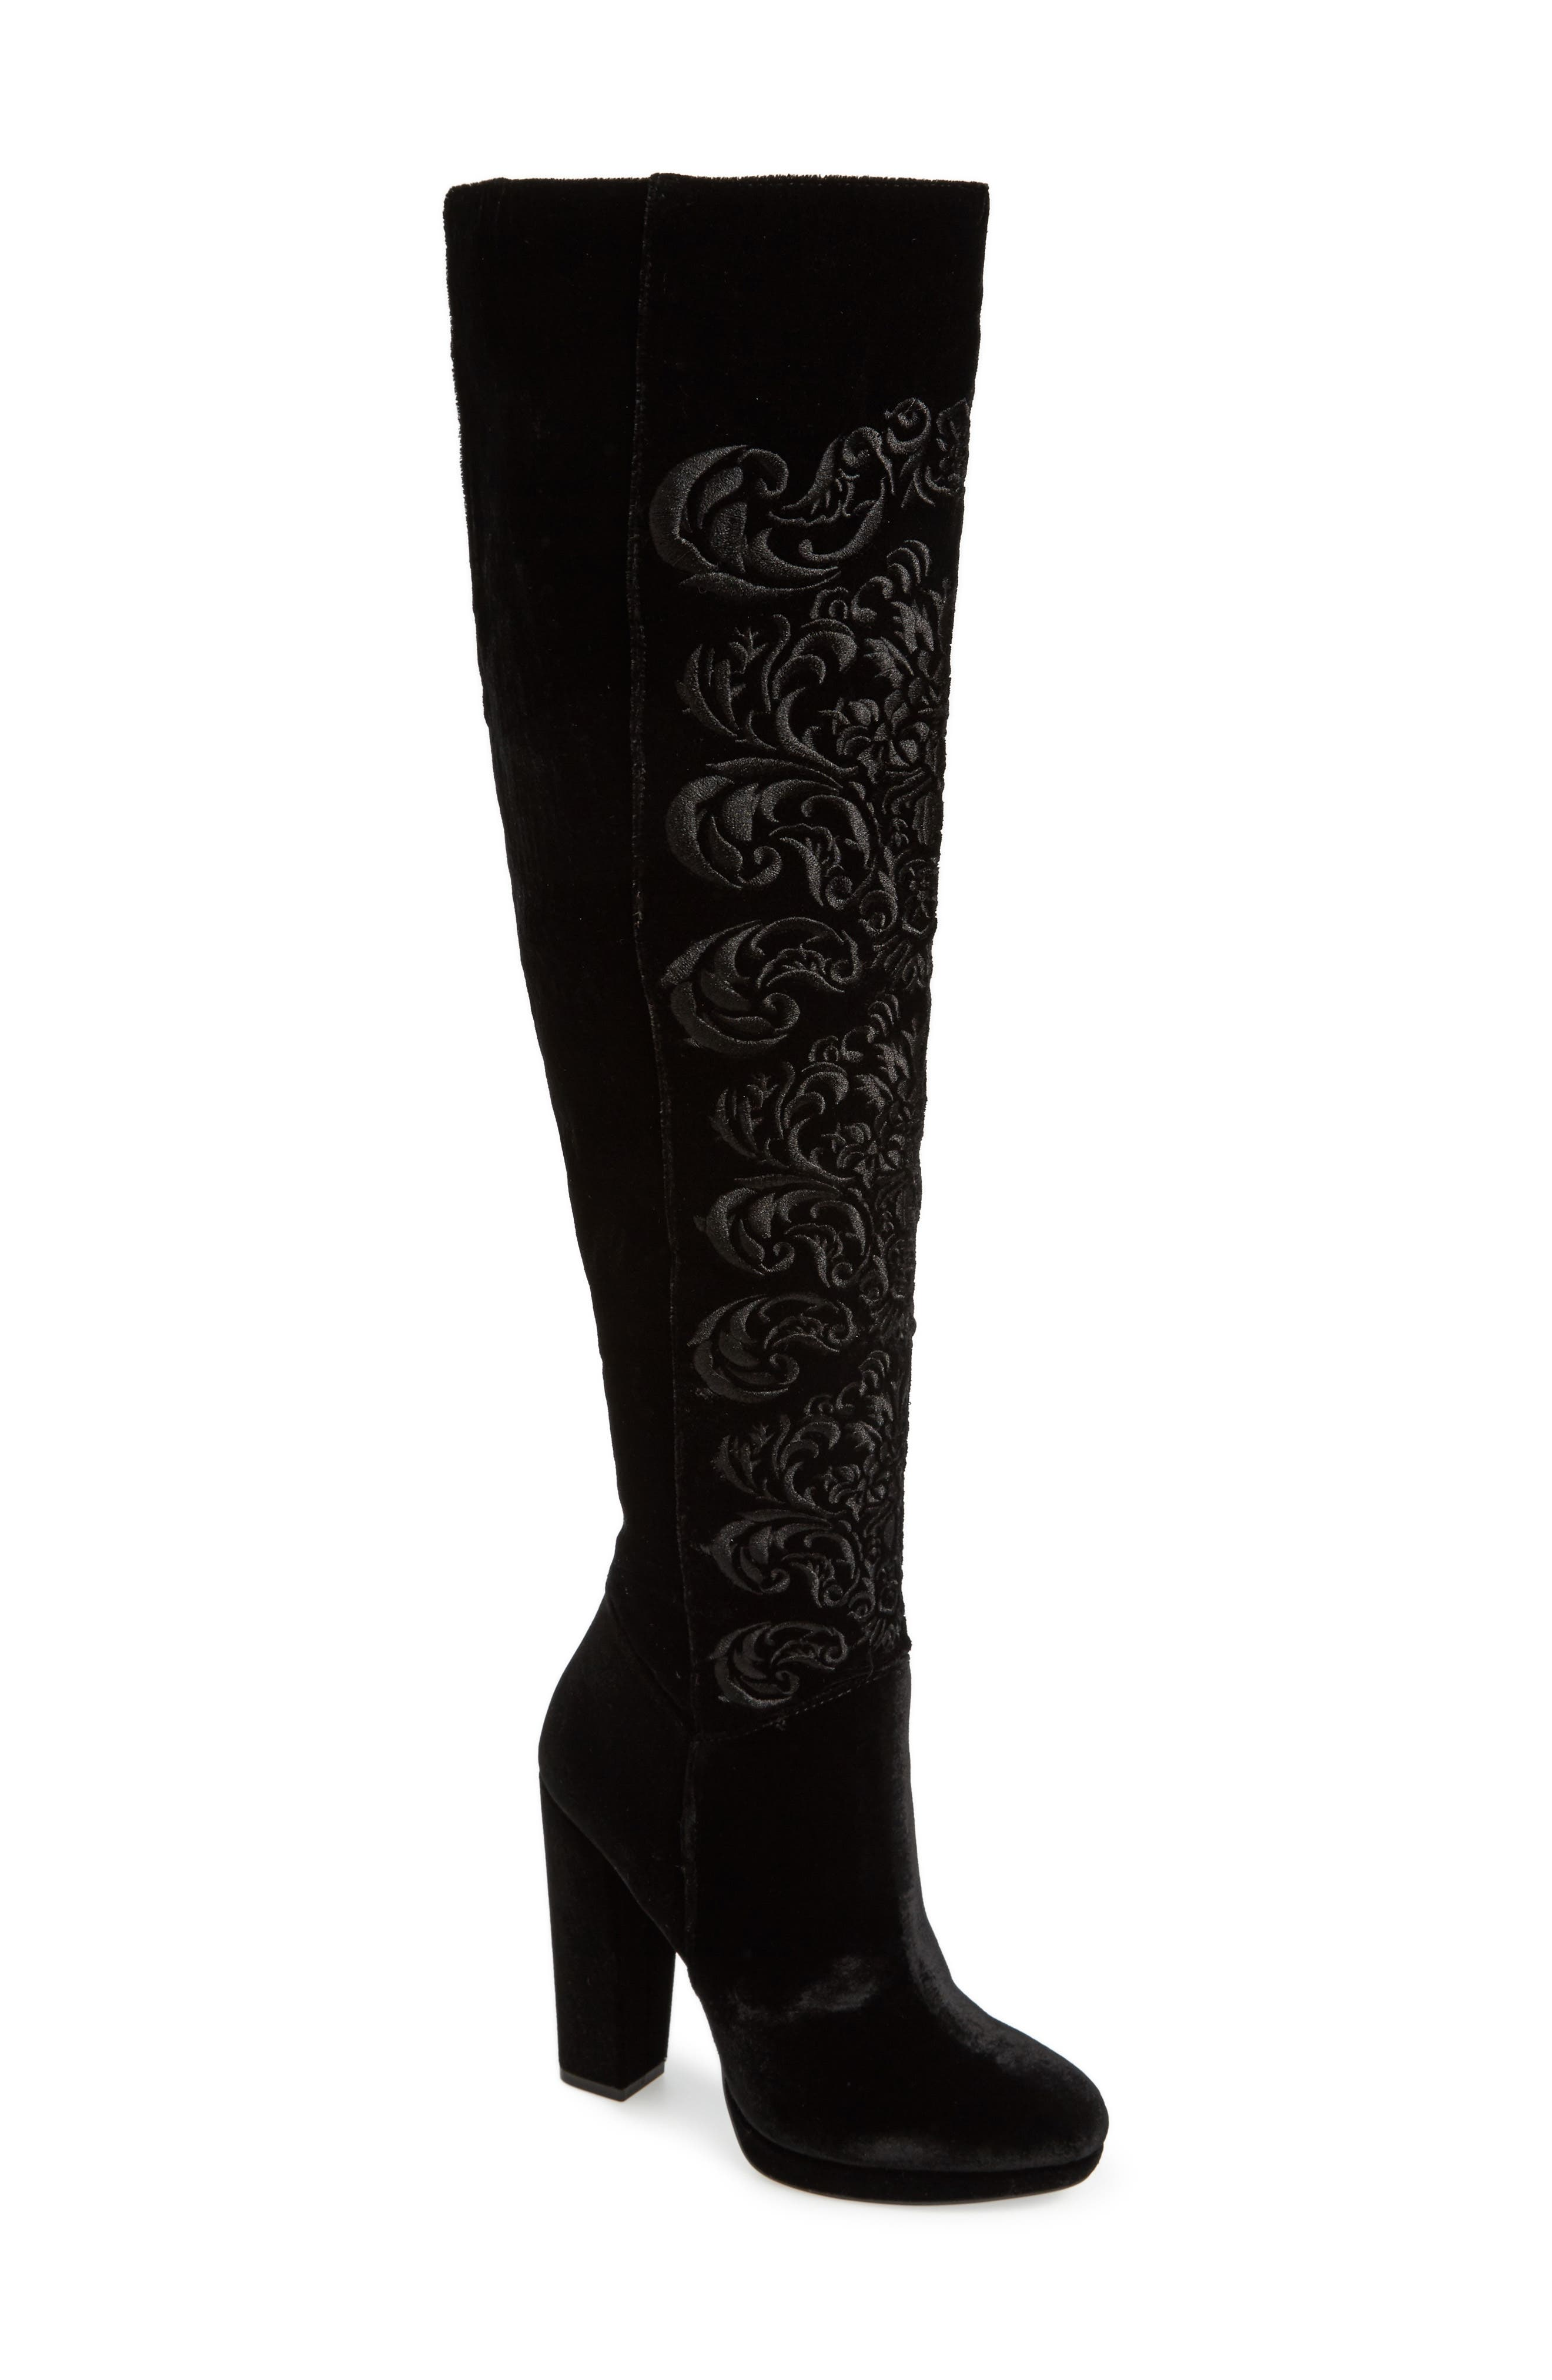 Grizella Embroidered Over the Knee Boot,                         Main,                         color, 001